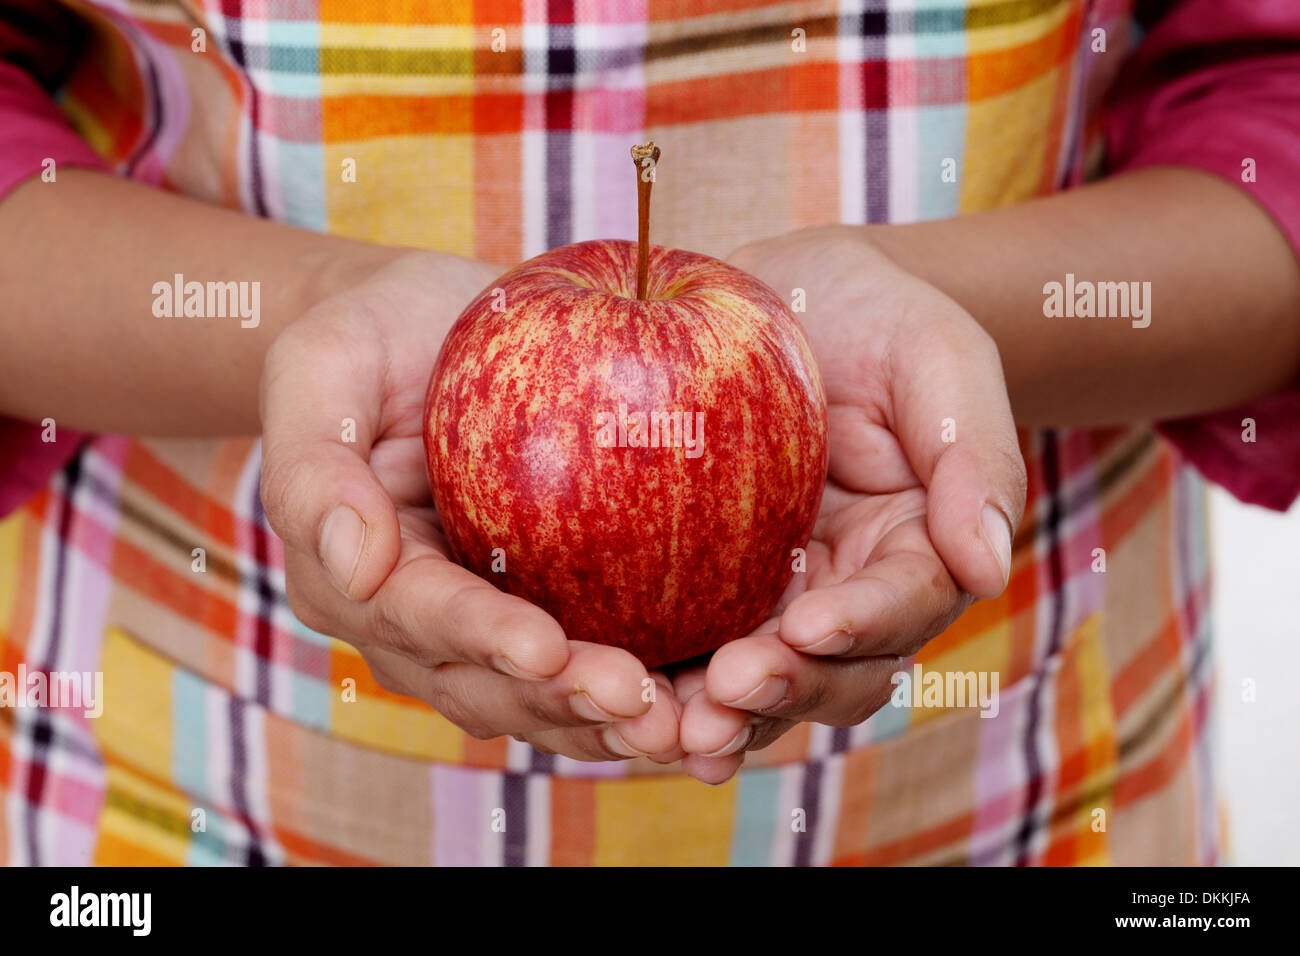 Red apple in woman hands - Stock Image